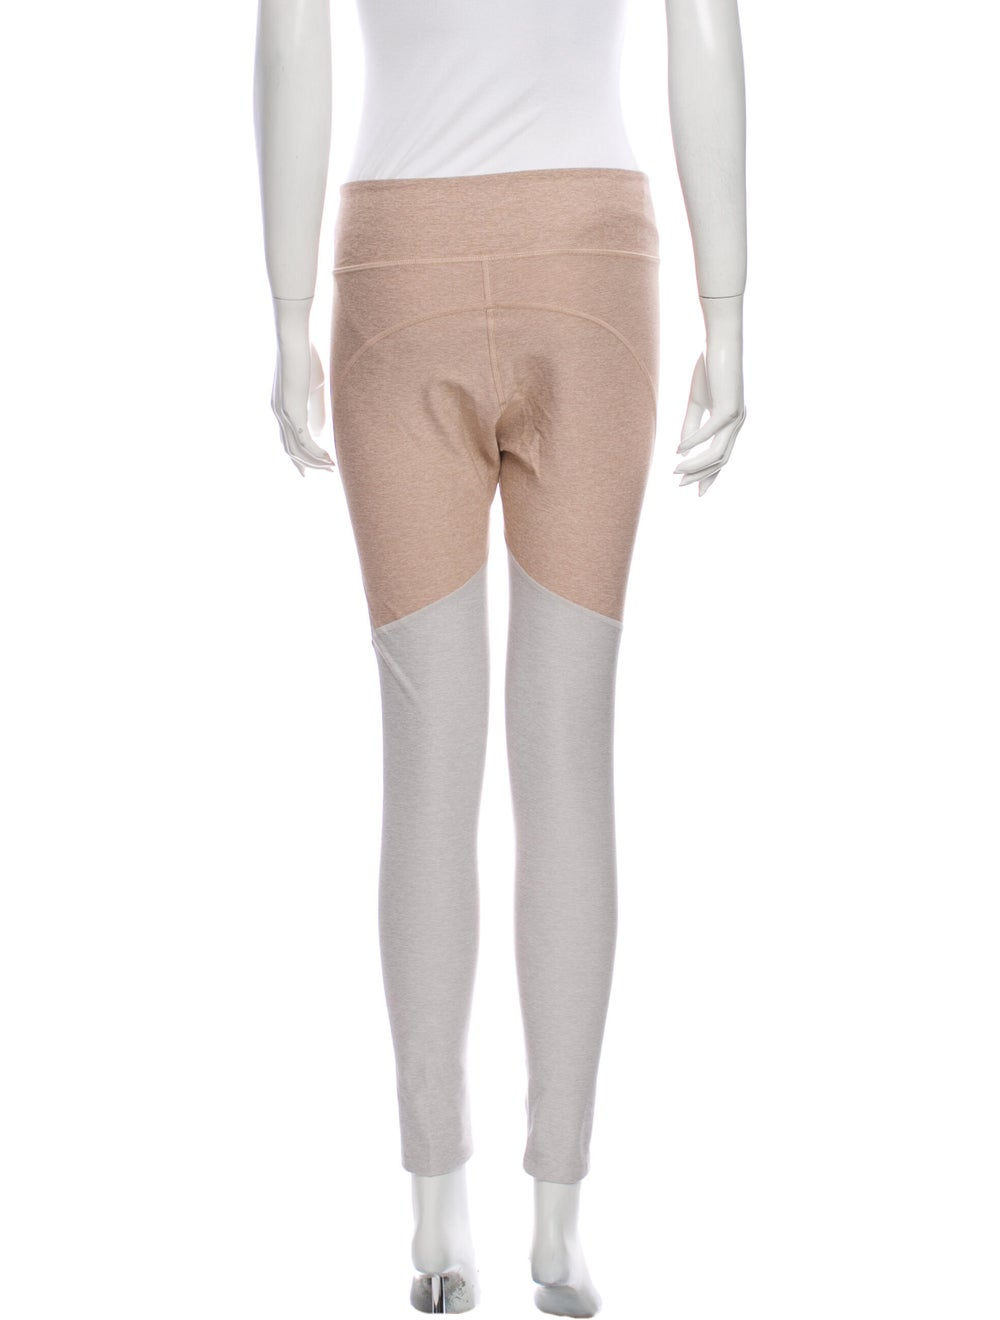 Outdoor Voices Skinny Leg Pants - image 3